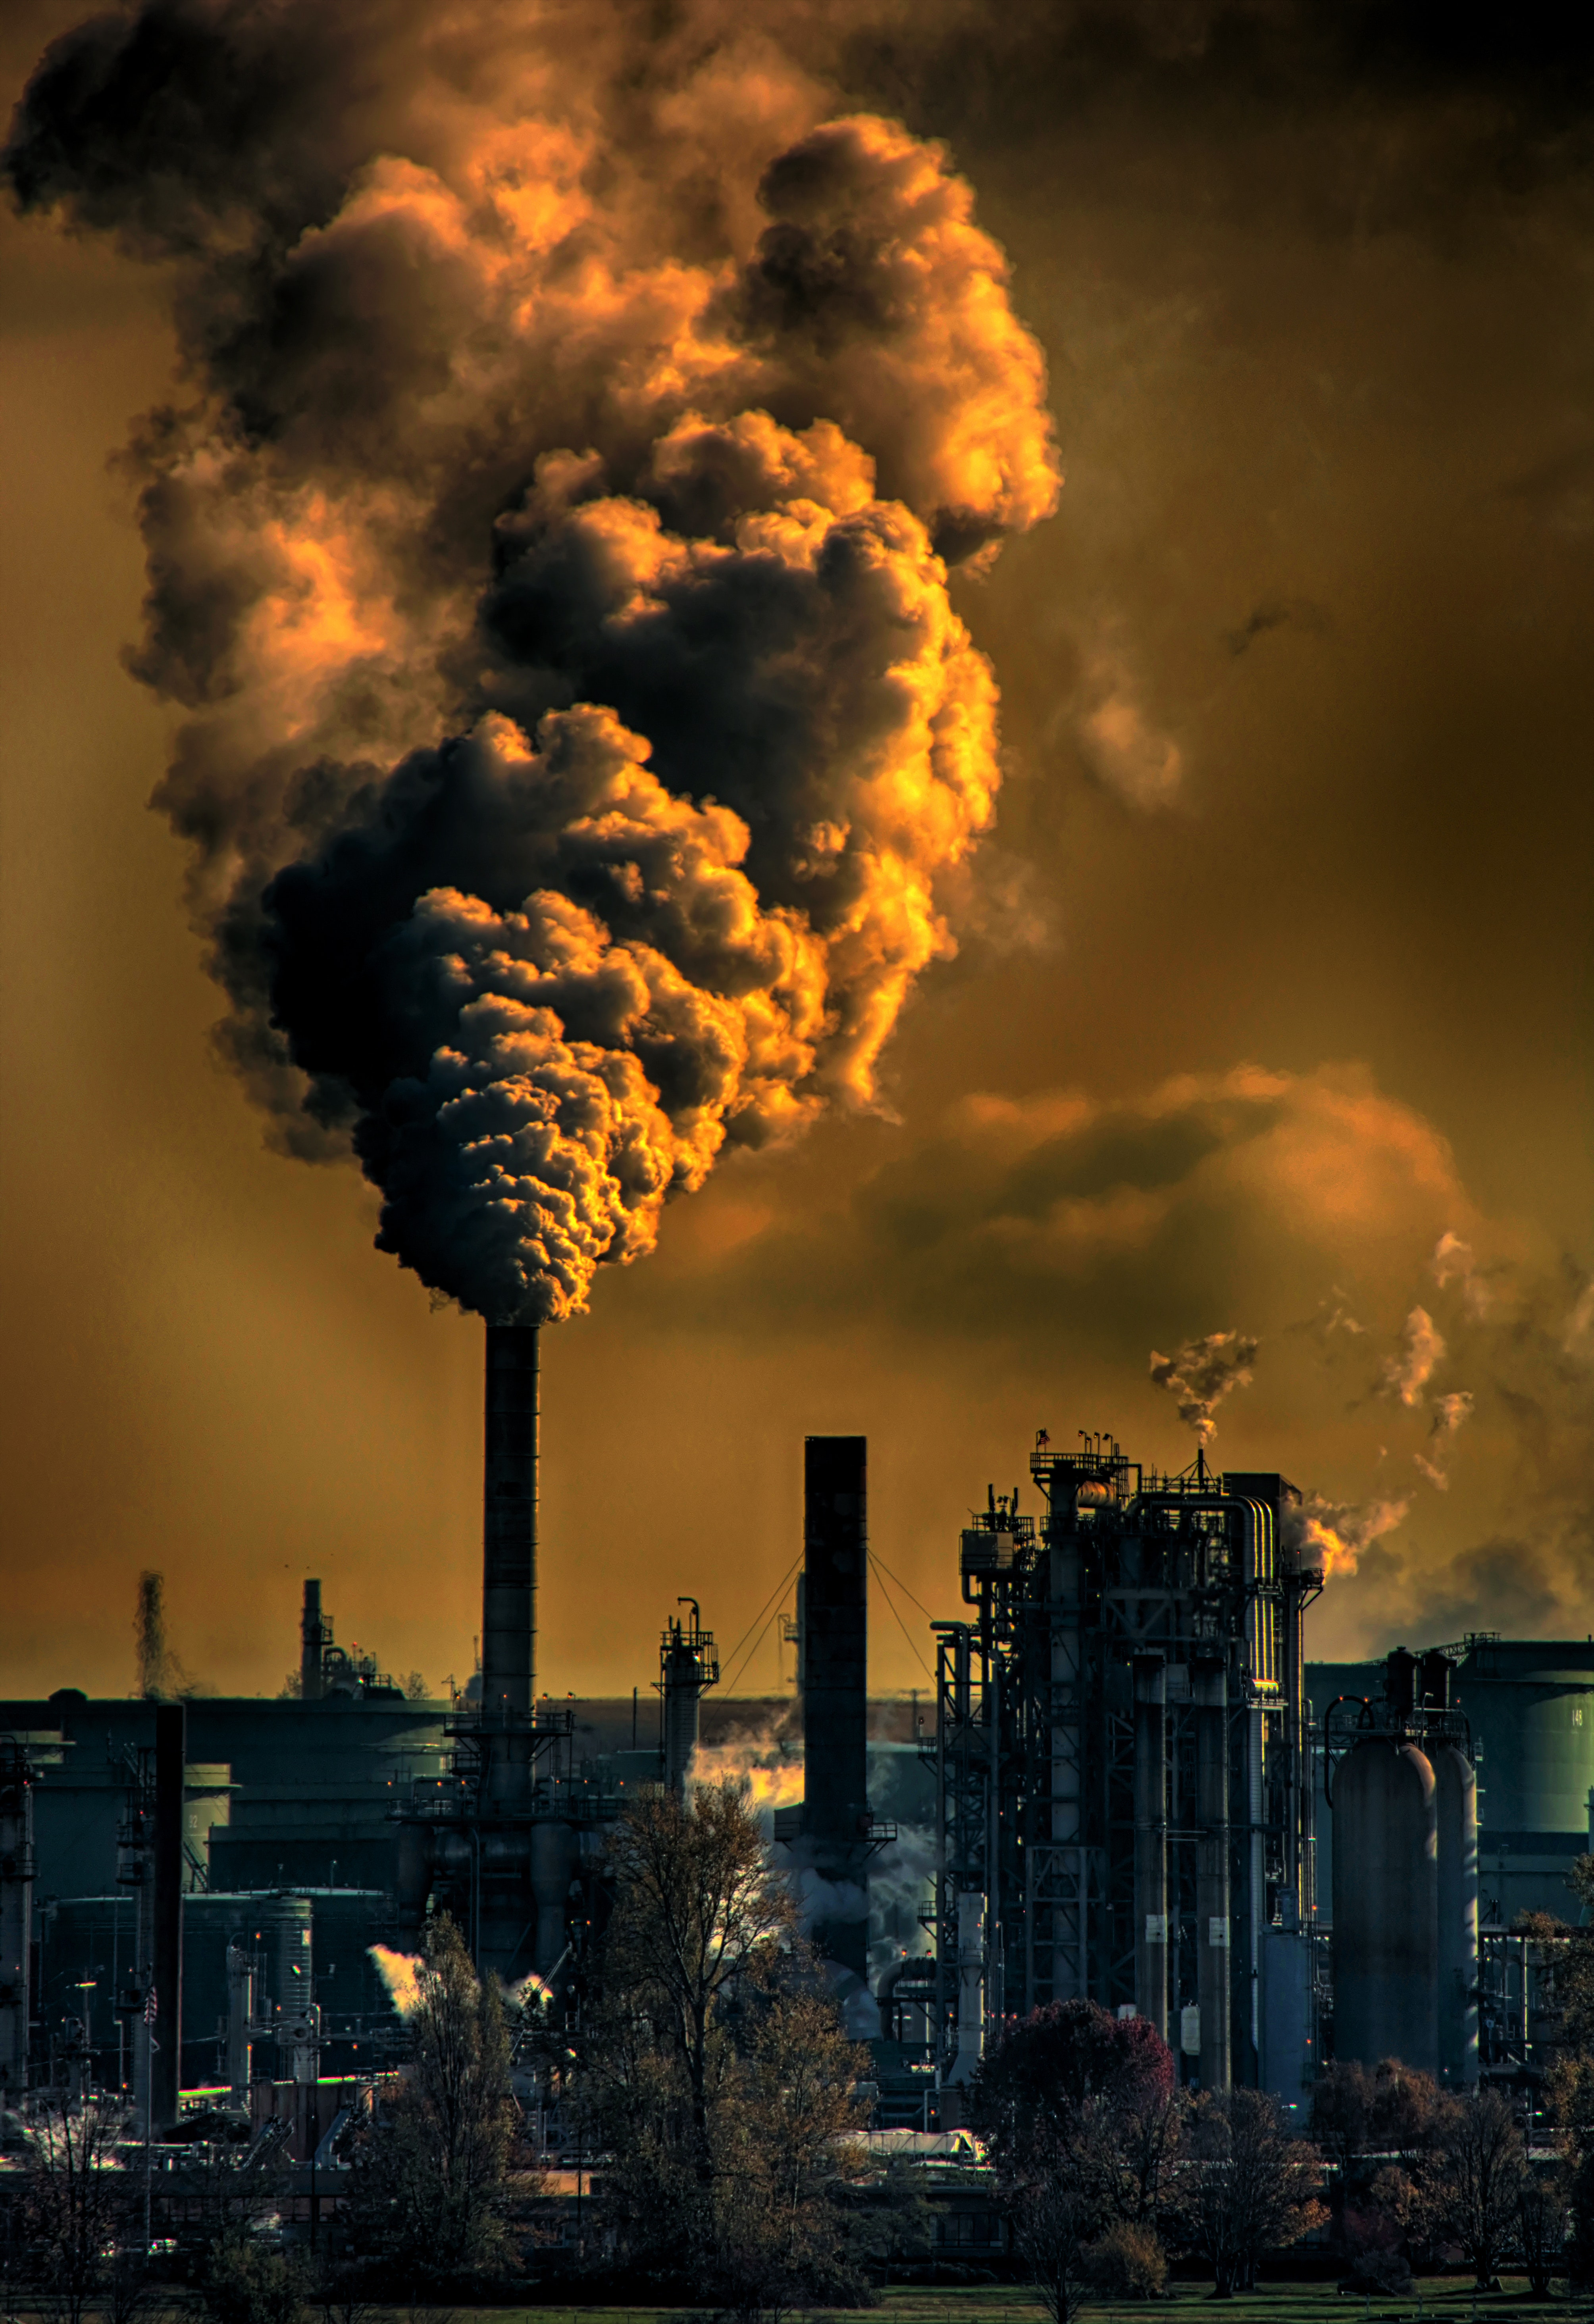 Photography of Factory, Air pollution, Industry, Sunset, Smoking, HQ Photo